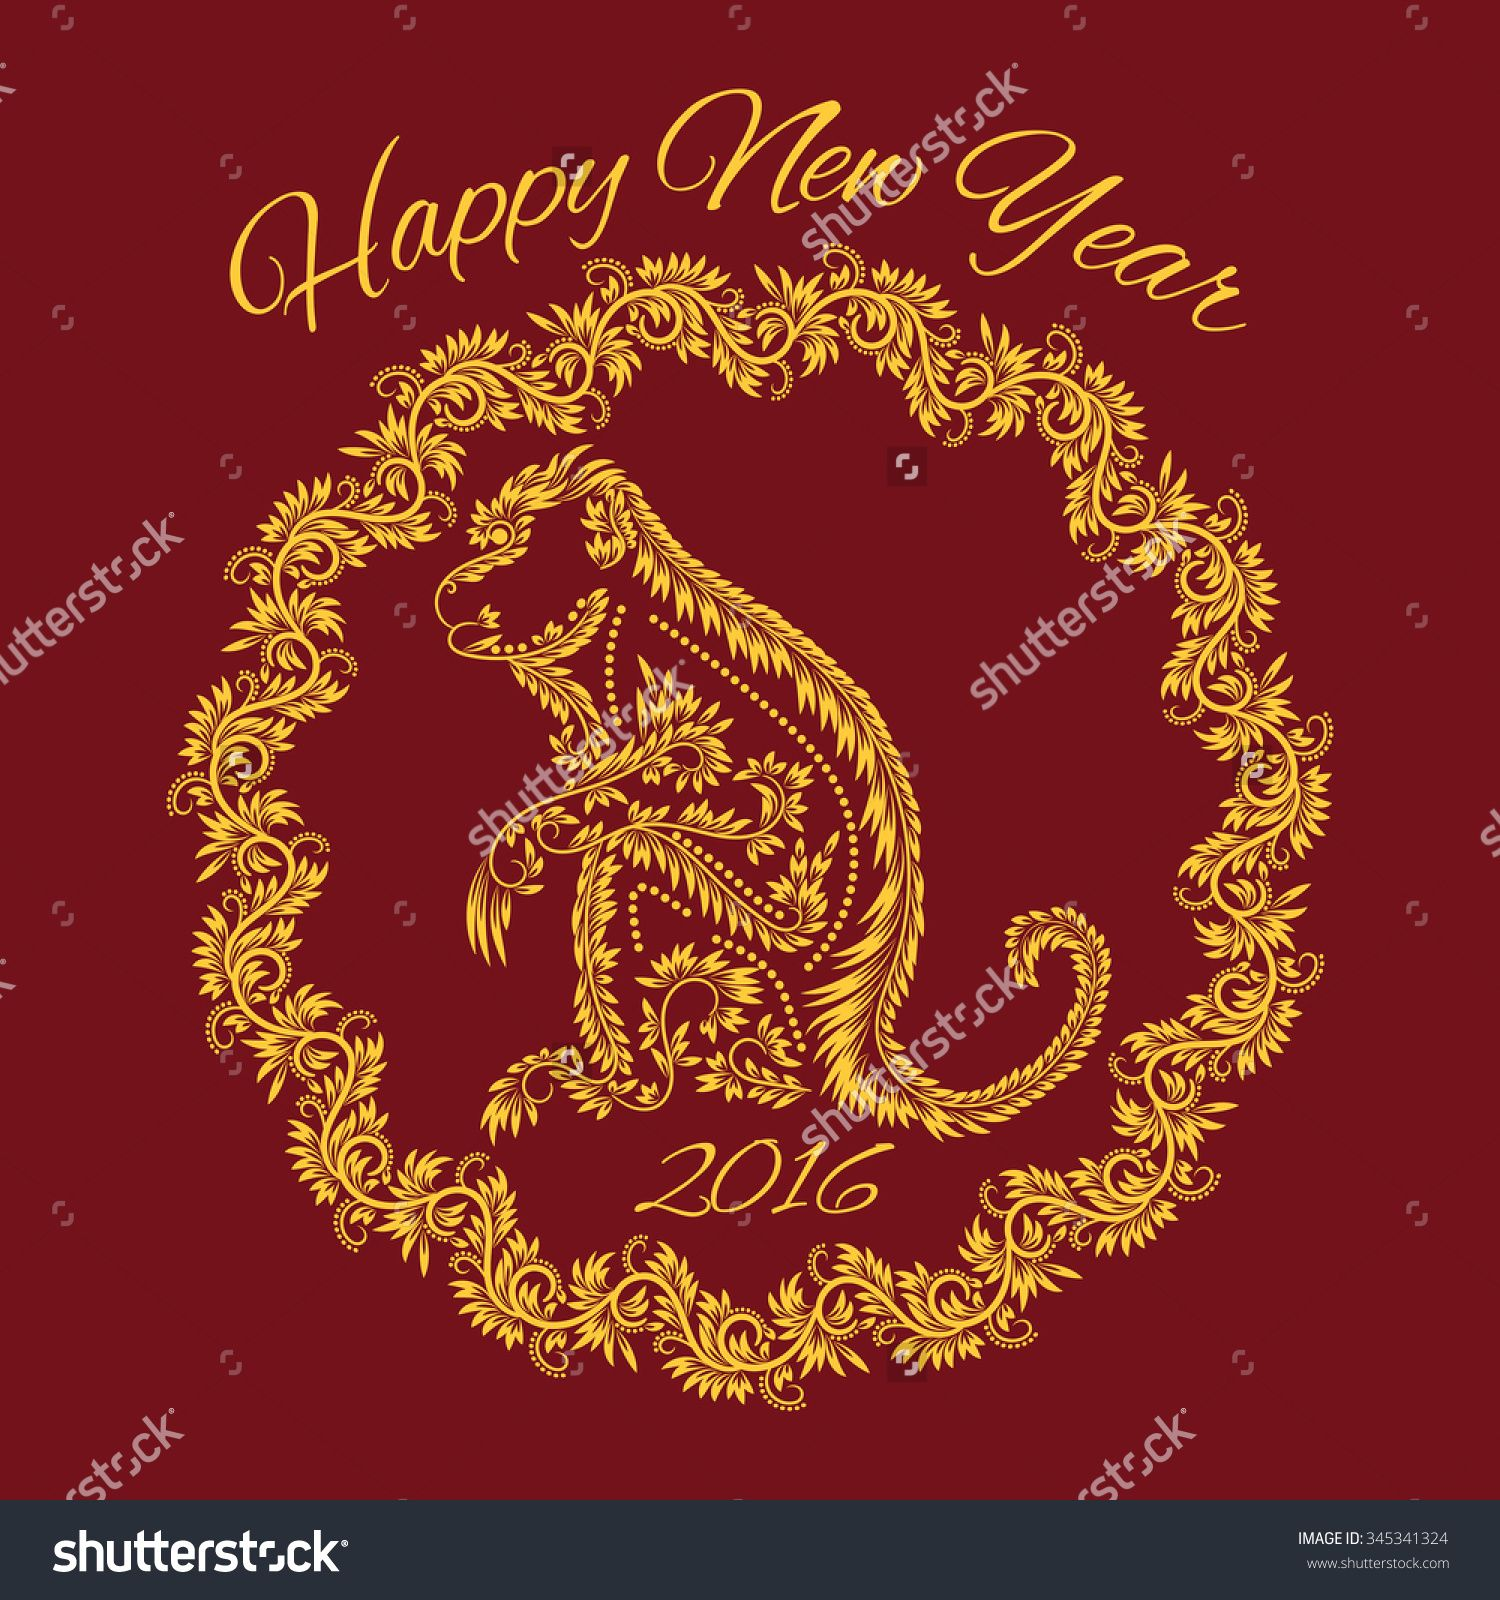 Fiery Monkey Year Greeting Card Template Floral Patterned